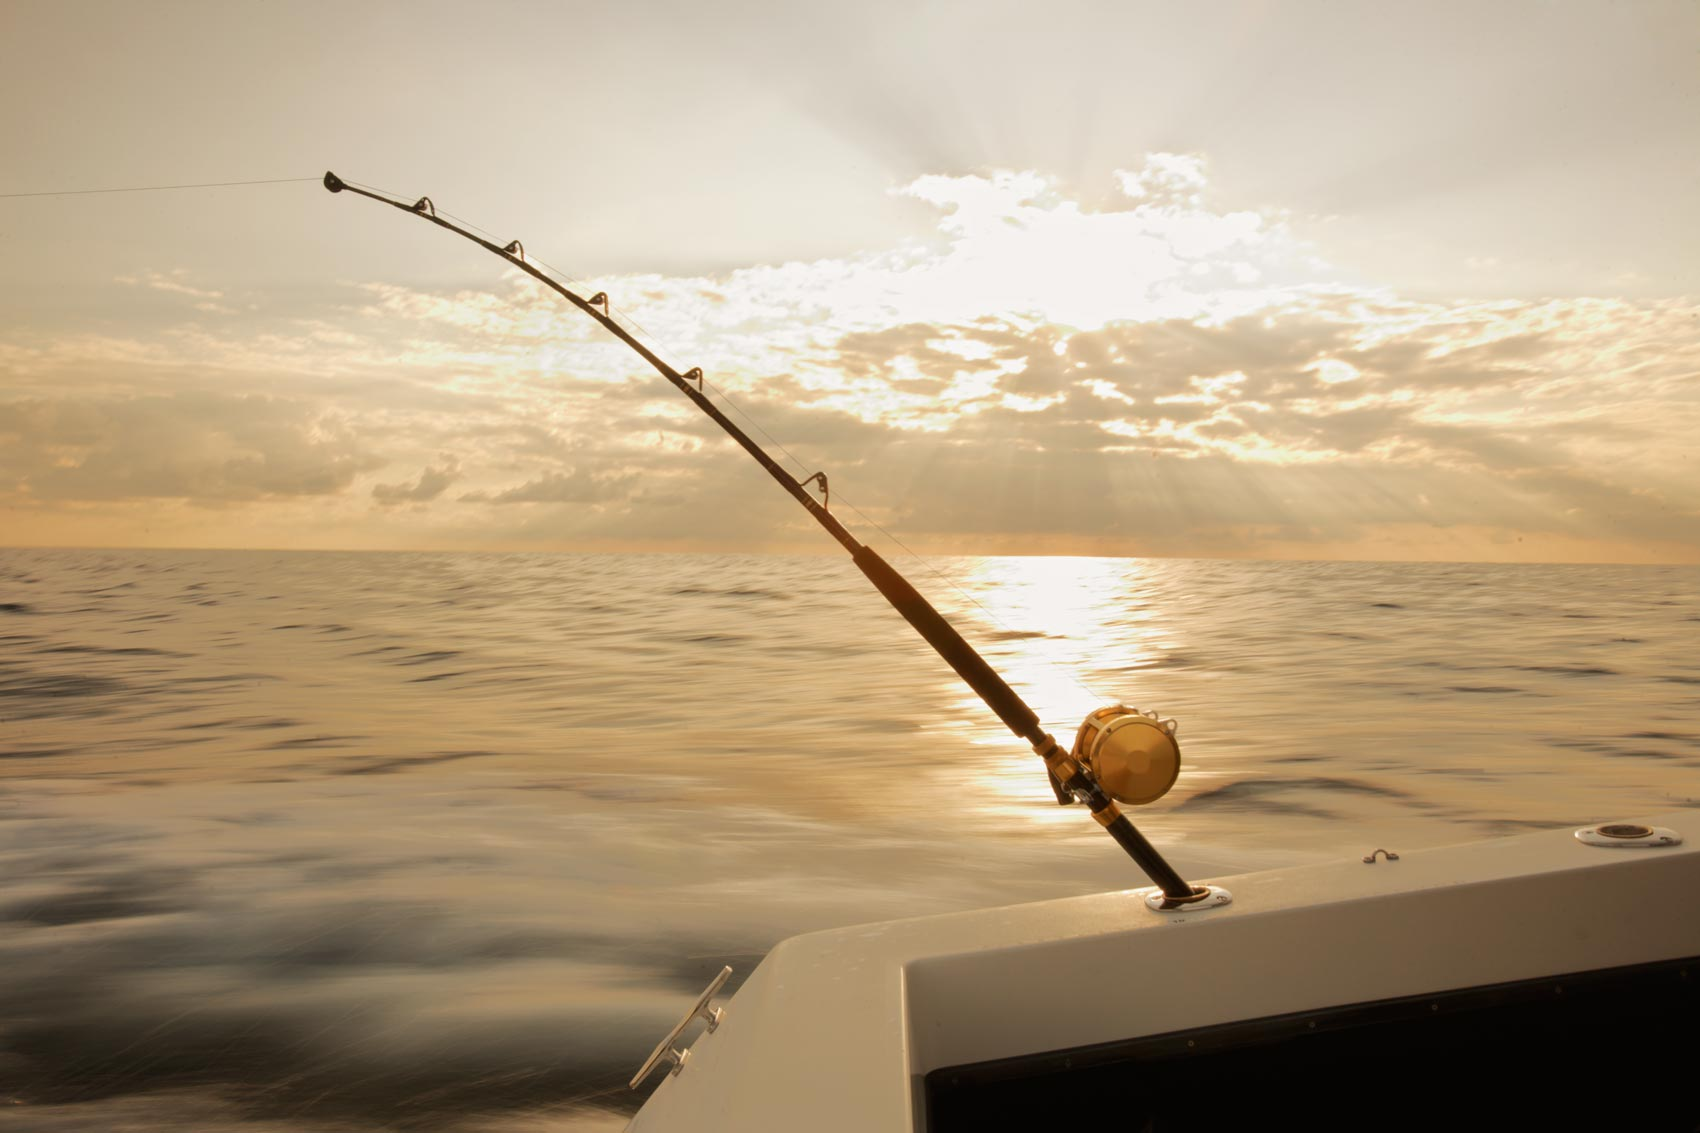 00-Fishing_Reel_Troll_Sunrise